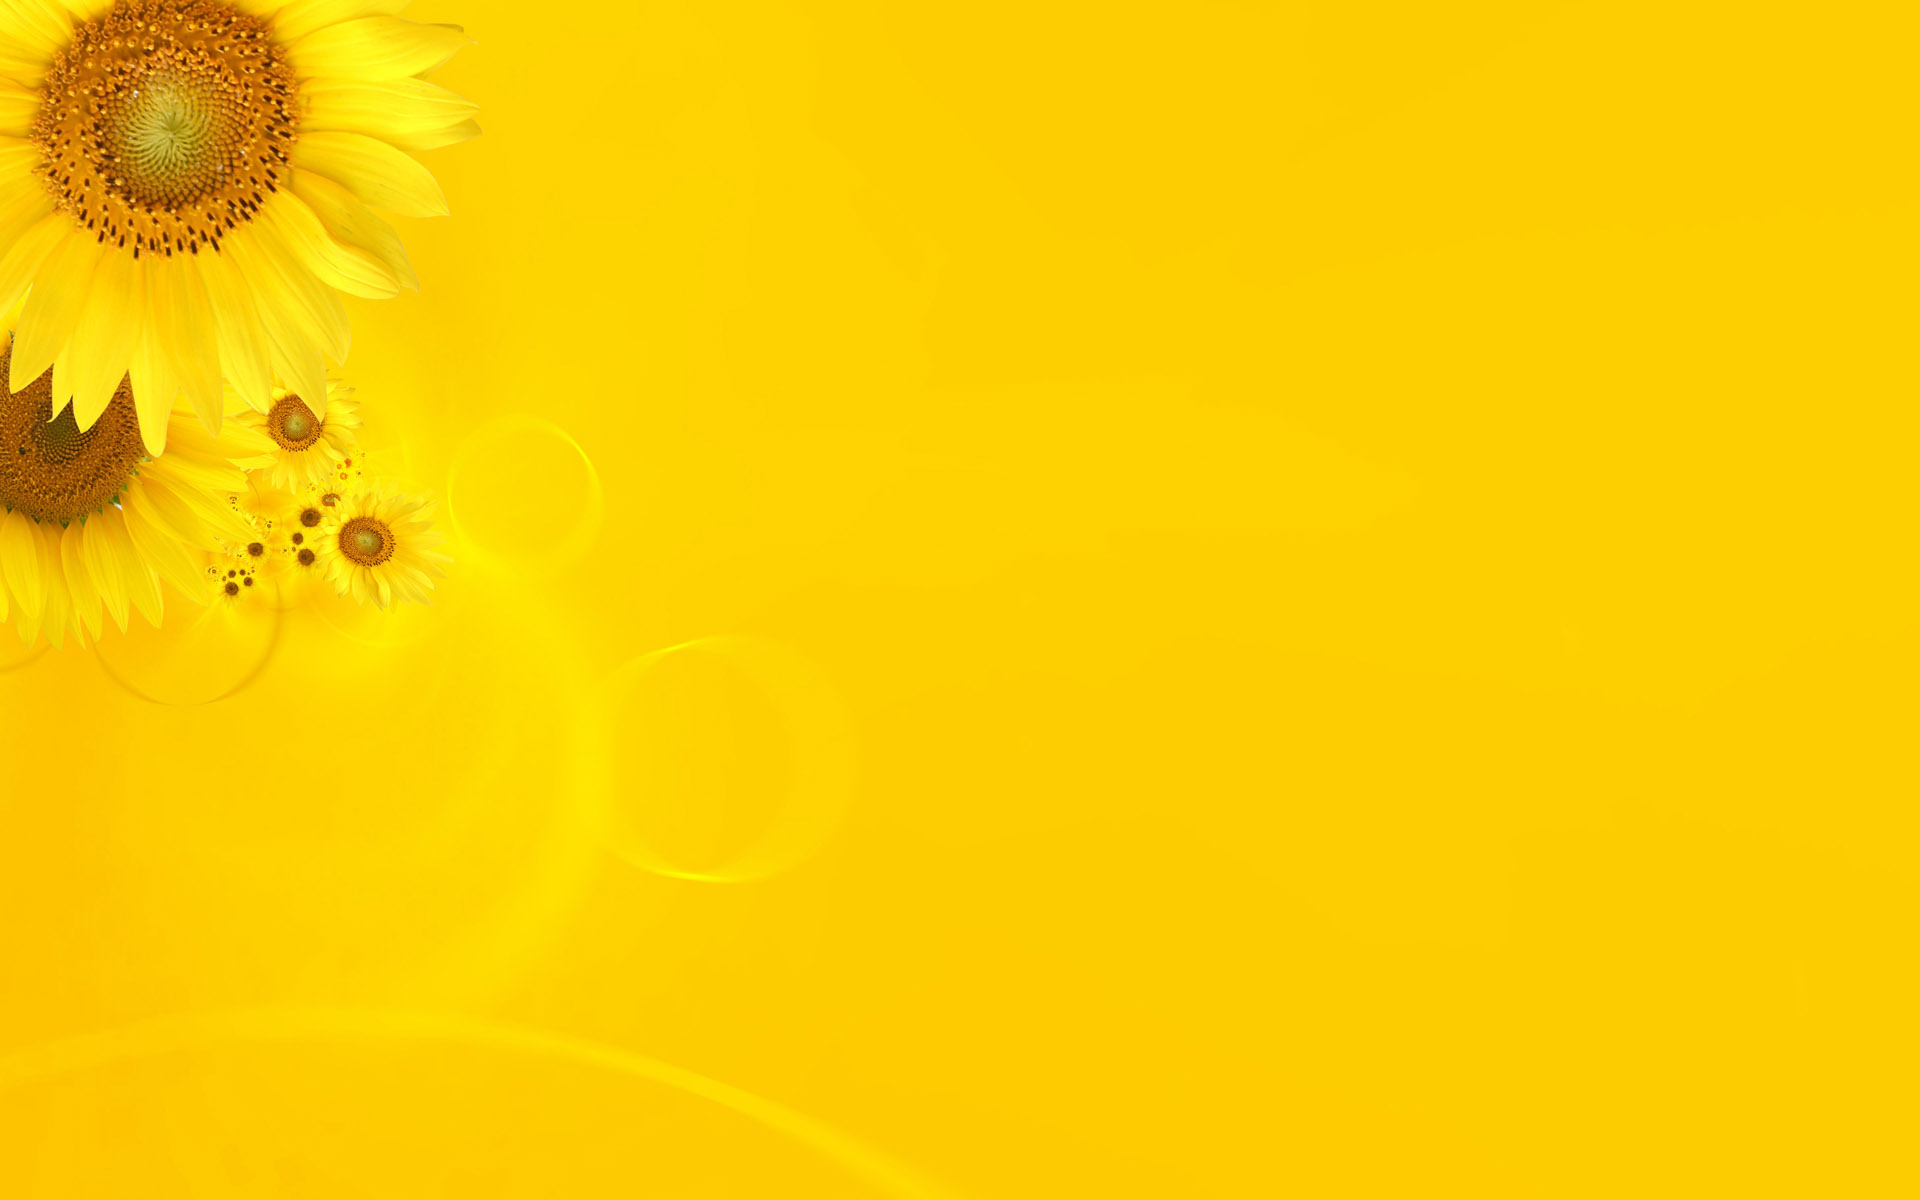 yellow_background_images